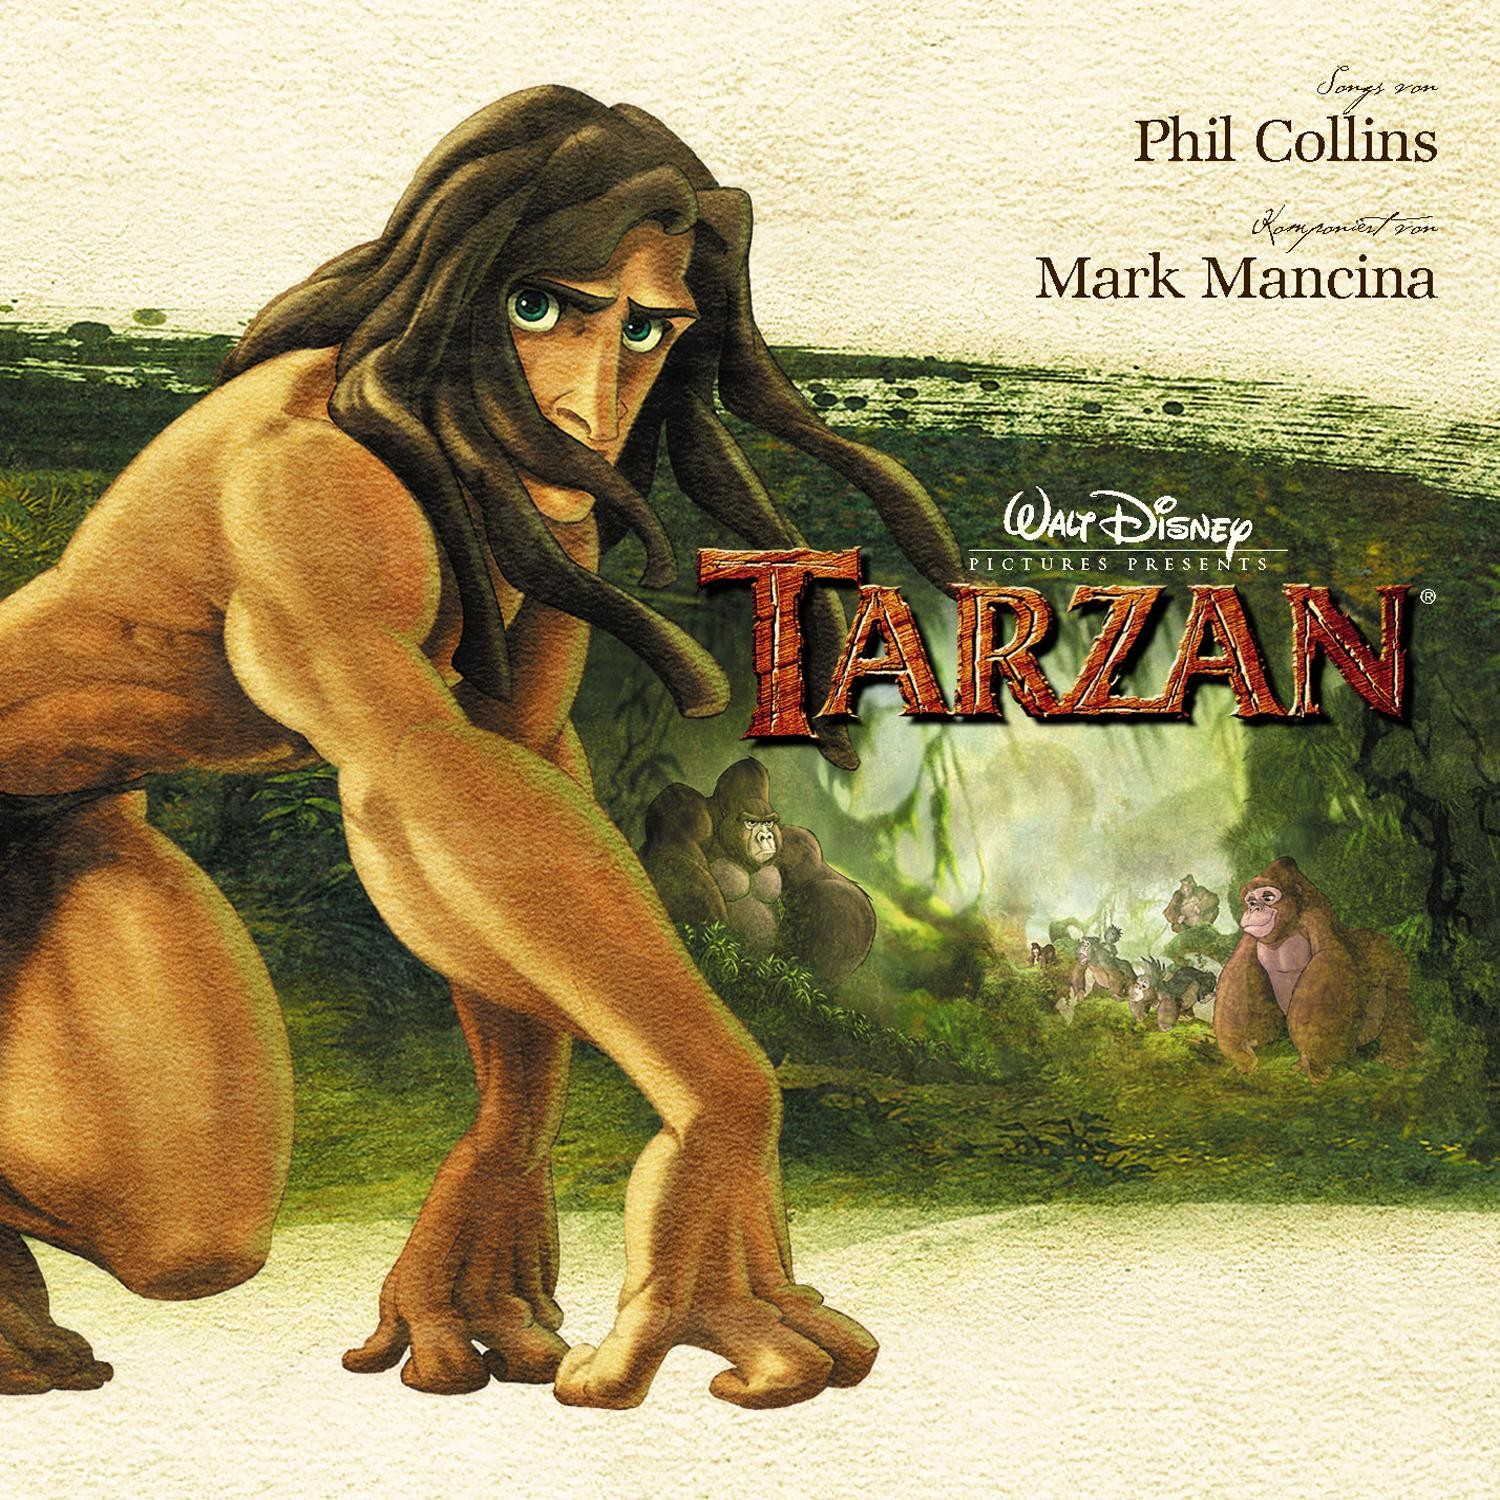 Tarzan-Soundtrack